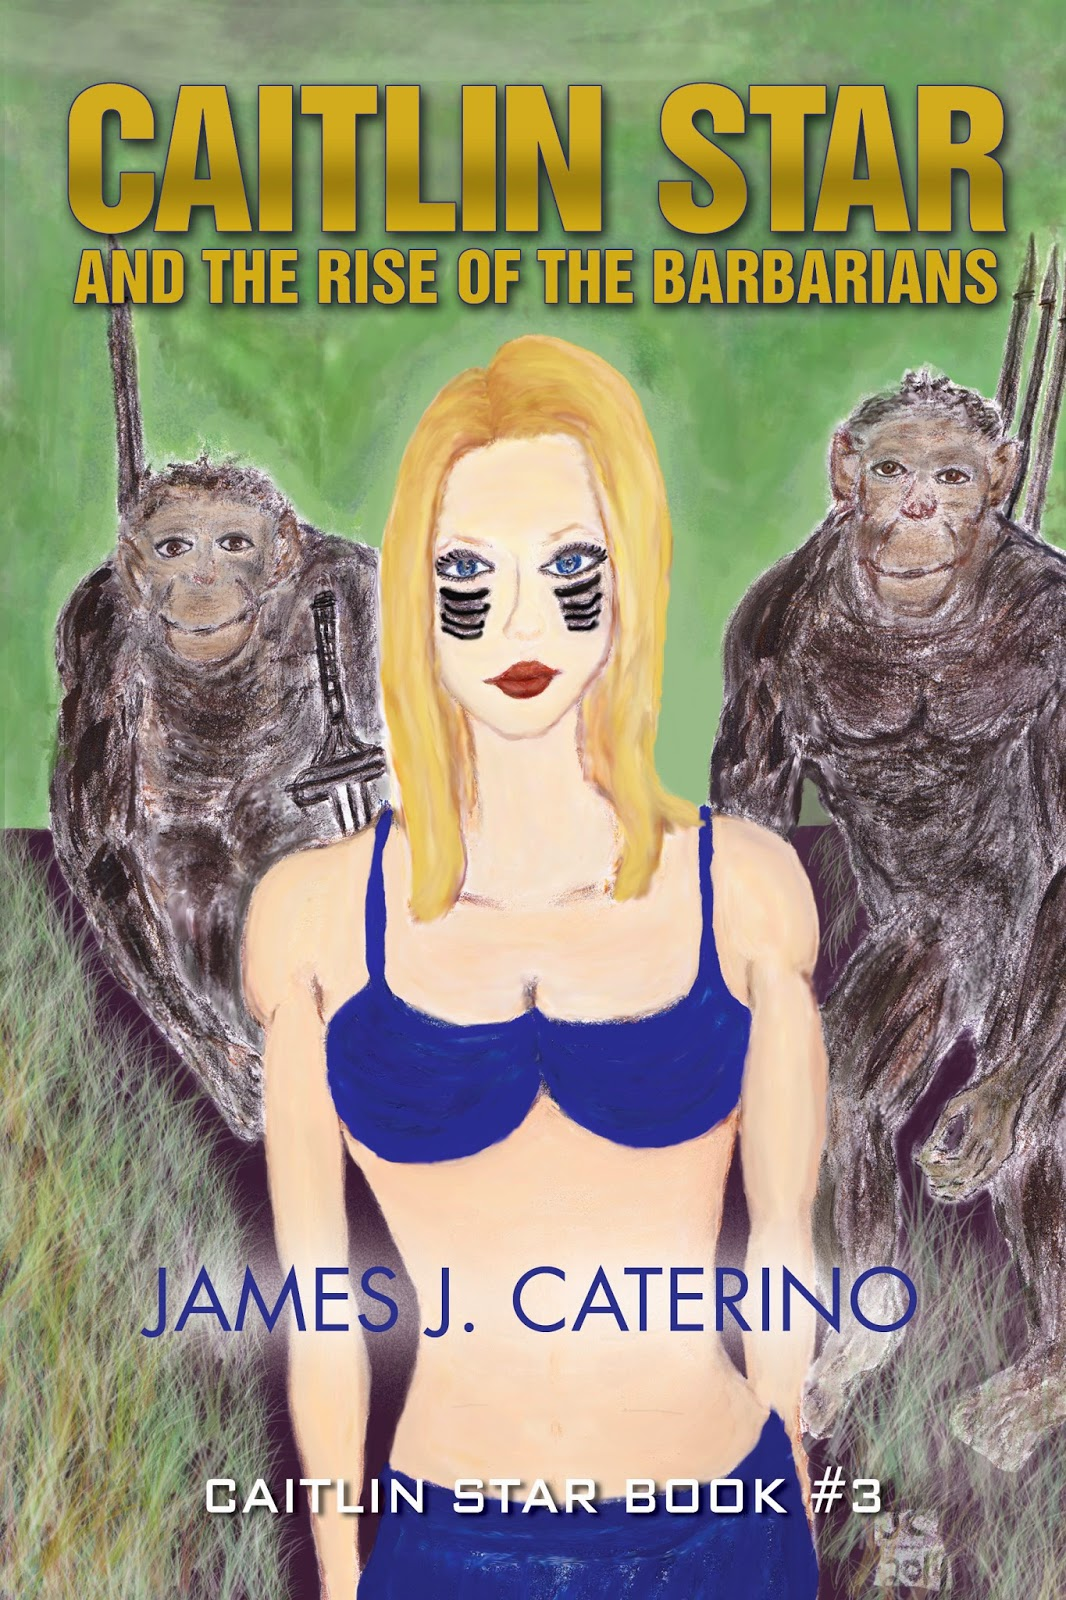 http://www.amazon.com/James-J.-Caterino/e/B002F5AKL2/ref=dp_byline_cont_book_1